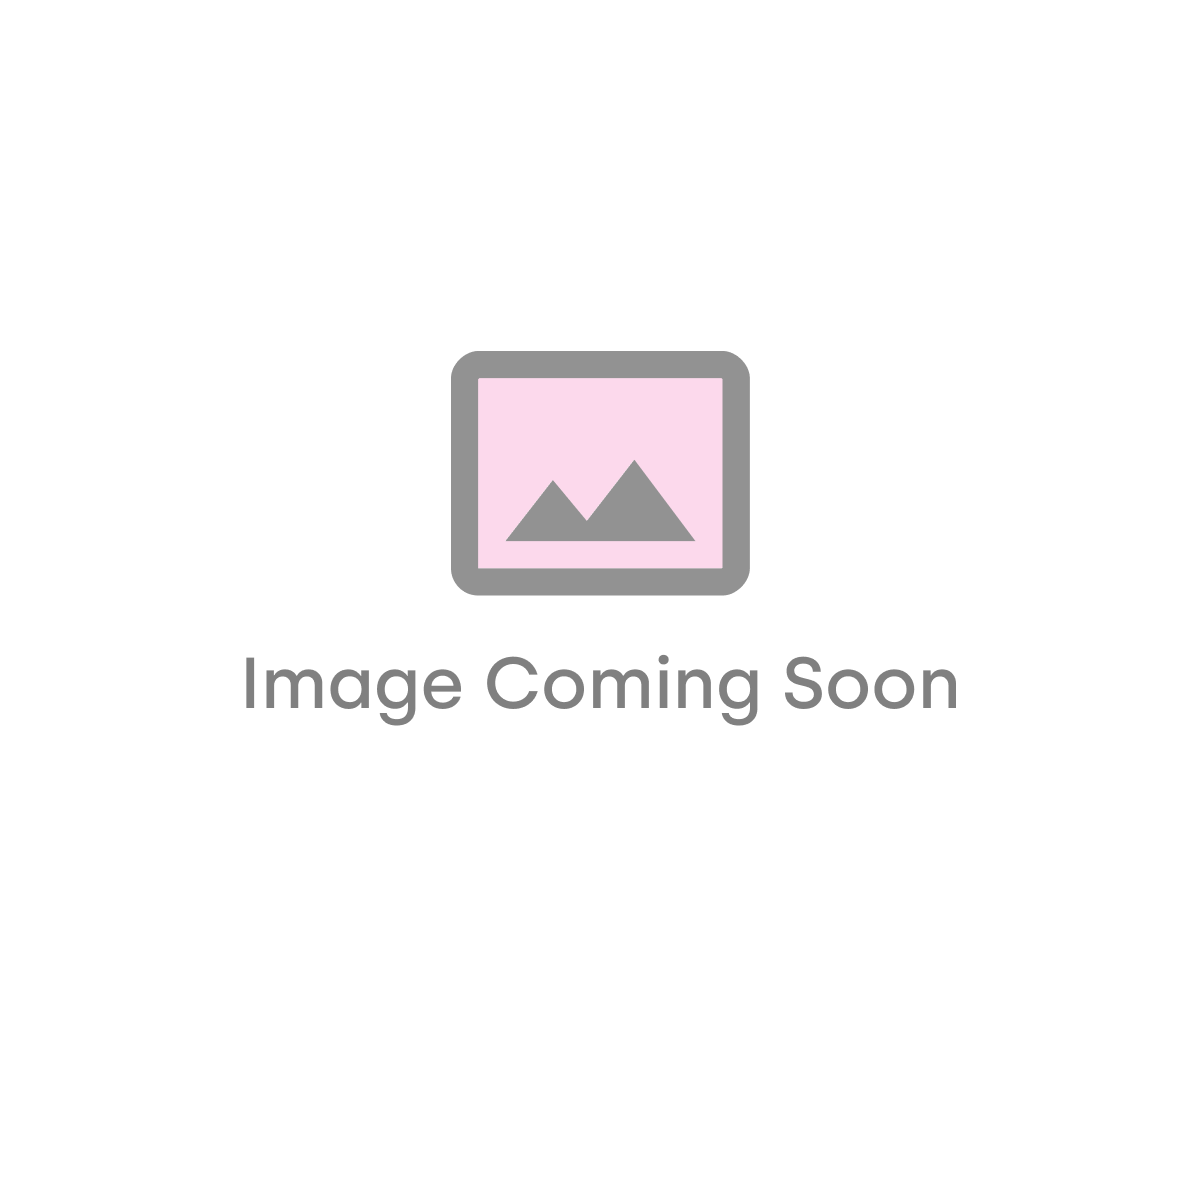 Asquiths Sanctity Thermostatic Control Only Pre Set Temperature, No Shut Off (17656)